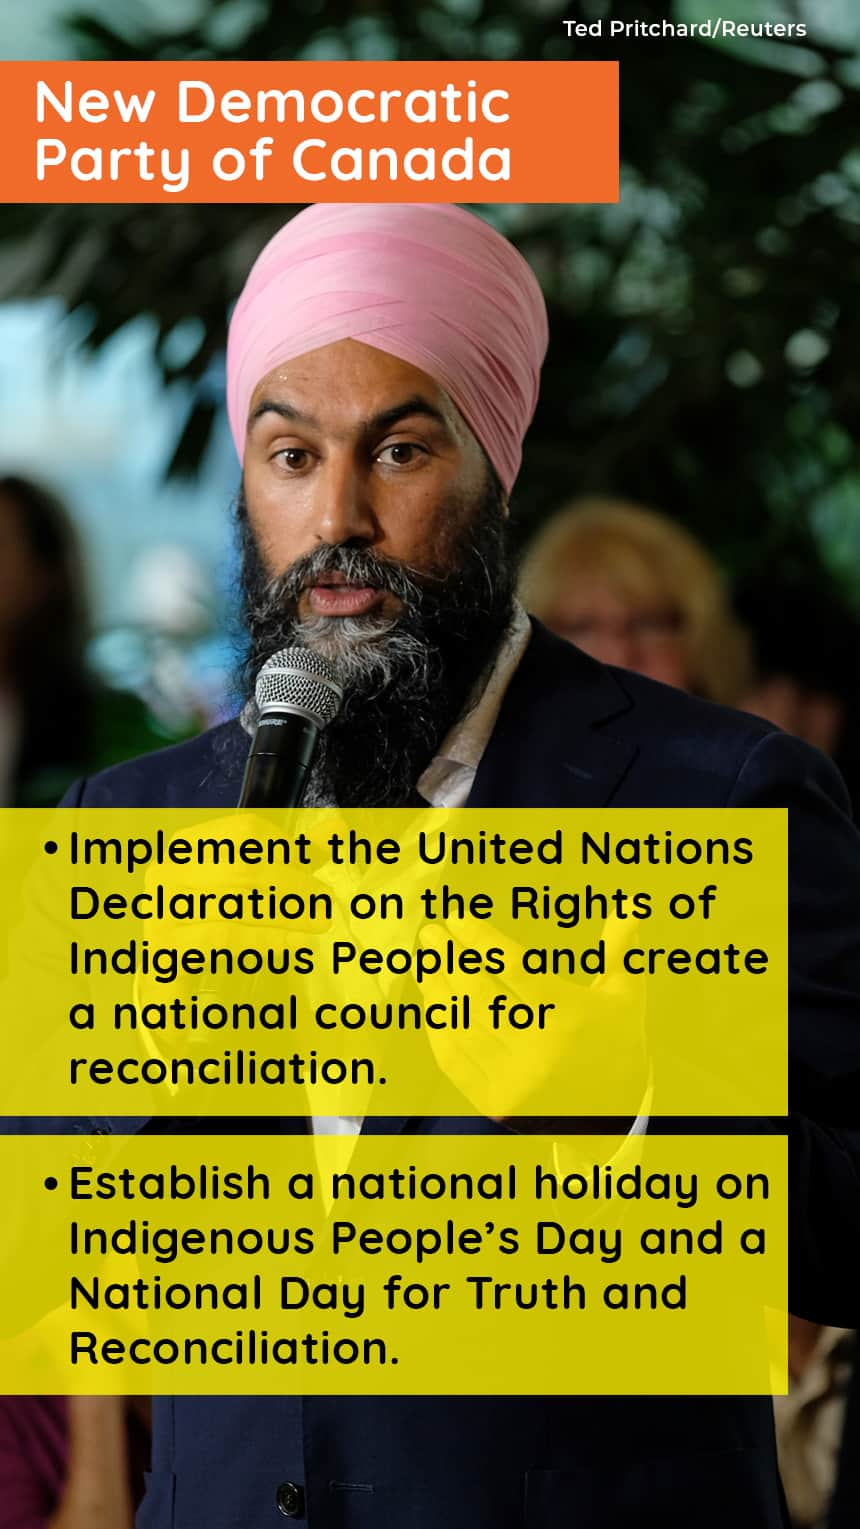 An image of Jagmeet Singh with text that says, NEW DEMOCRATIC PARTY OF CANADA, Implement the United Nations Declaration on the Rights of Indigenous Peoples and create a national council for reconciliation, Establish a national holiday on Indigenous People's Day and a National Day for Truth and Reconciliation.